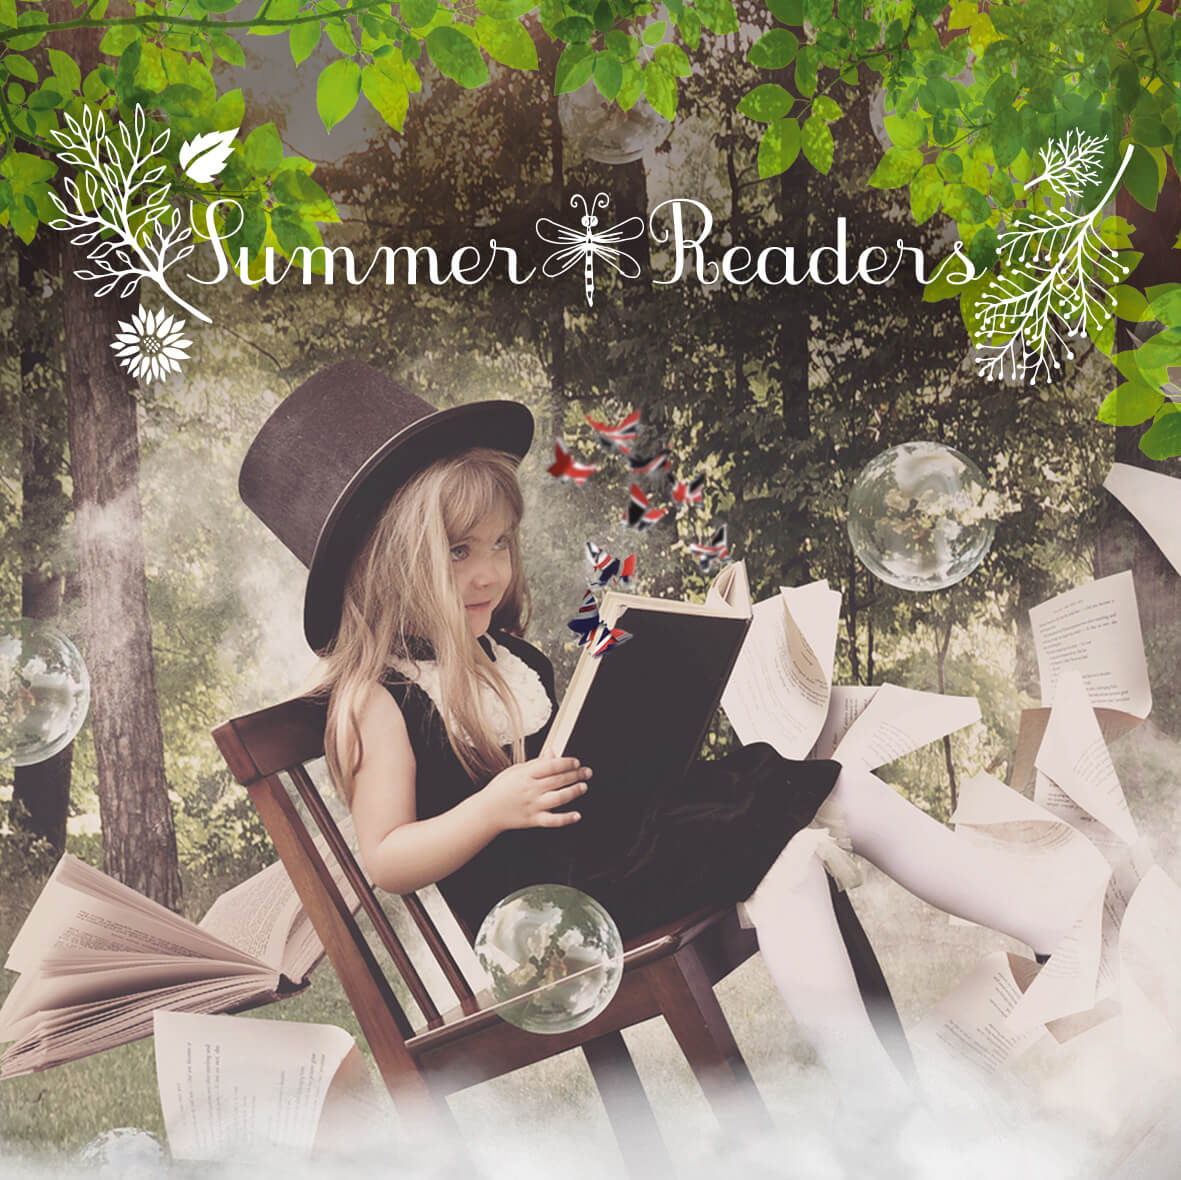 This summer refresh your English with 'Summer Readers'